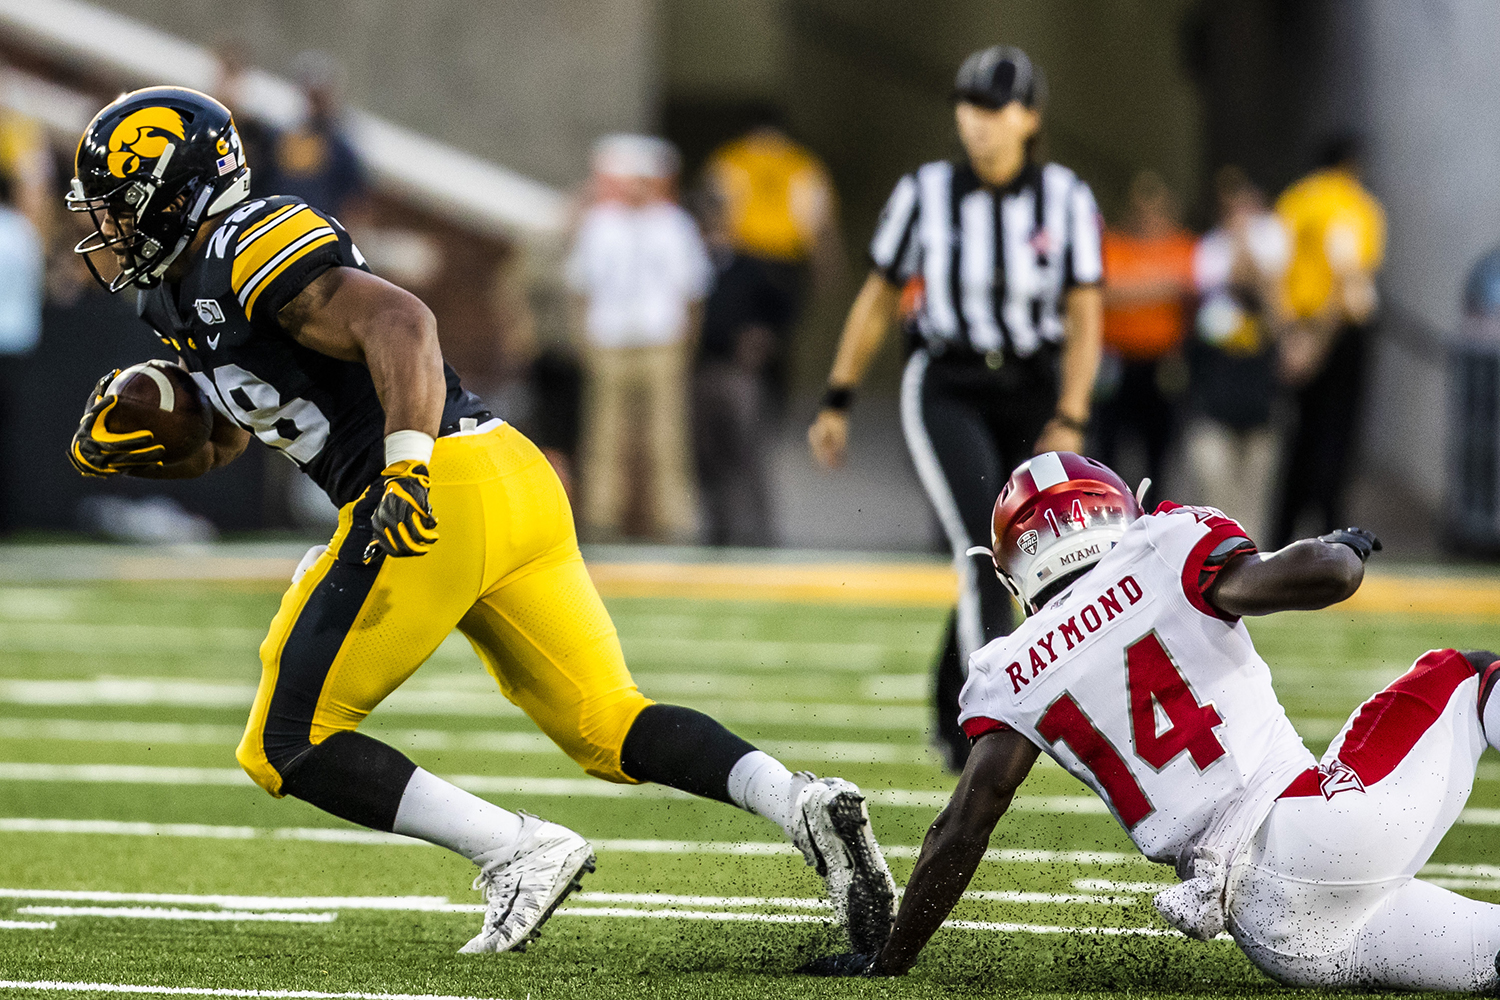 Iowa+running+back+Toren+Young+breaks+away+from+Miami+%28Ohio%29+defensive+back+Zedrick+Raymond+during+their+game+at+Kinnick+Stadium+on+Saturday%2C+August+31%2C+2019.+The+Hawkeyes+defeated+the+Redhawks+38-14.